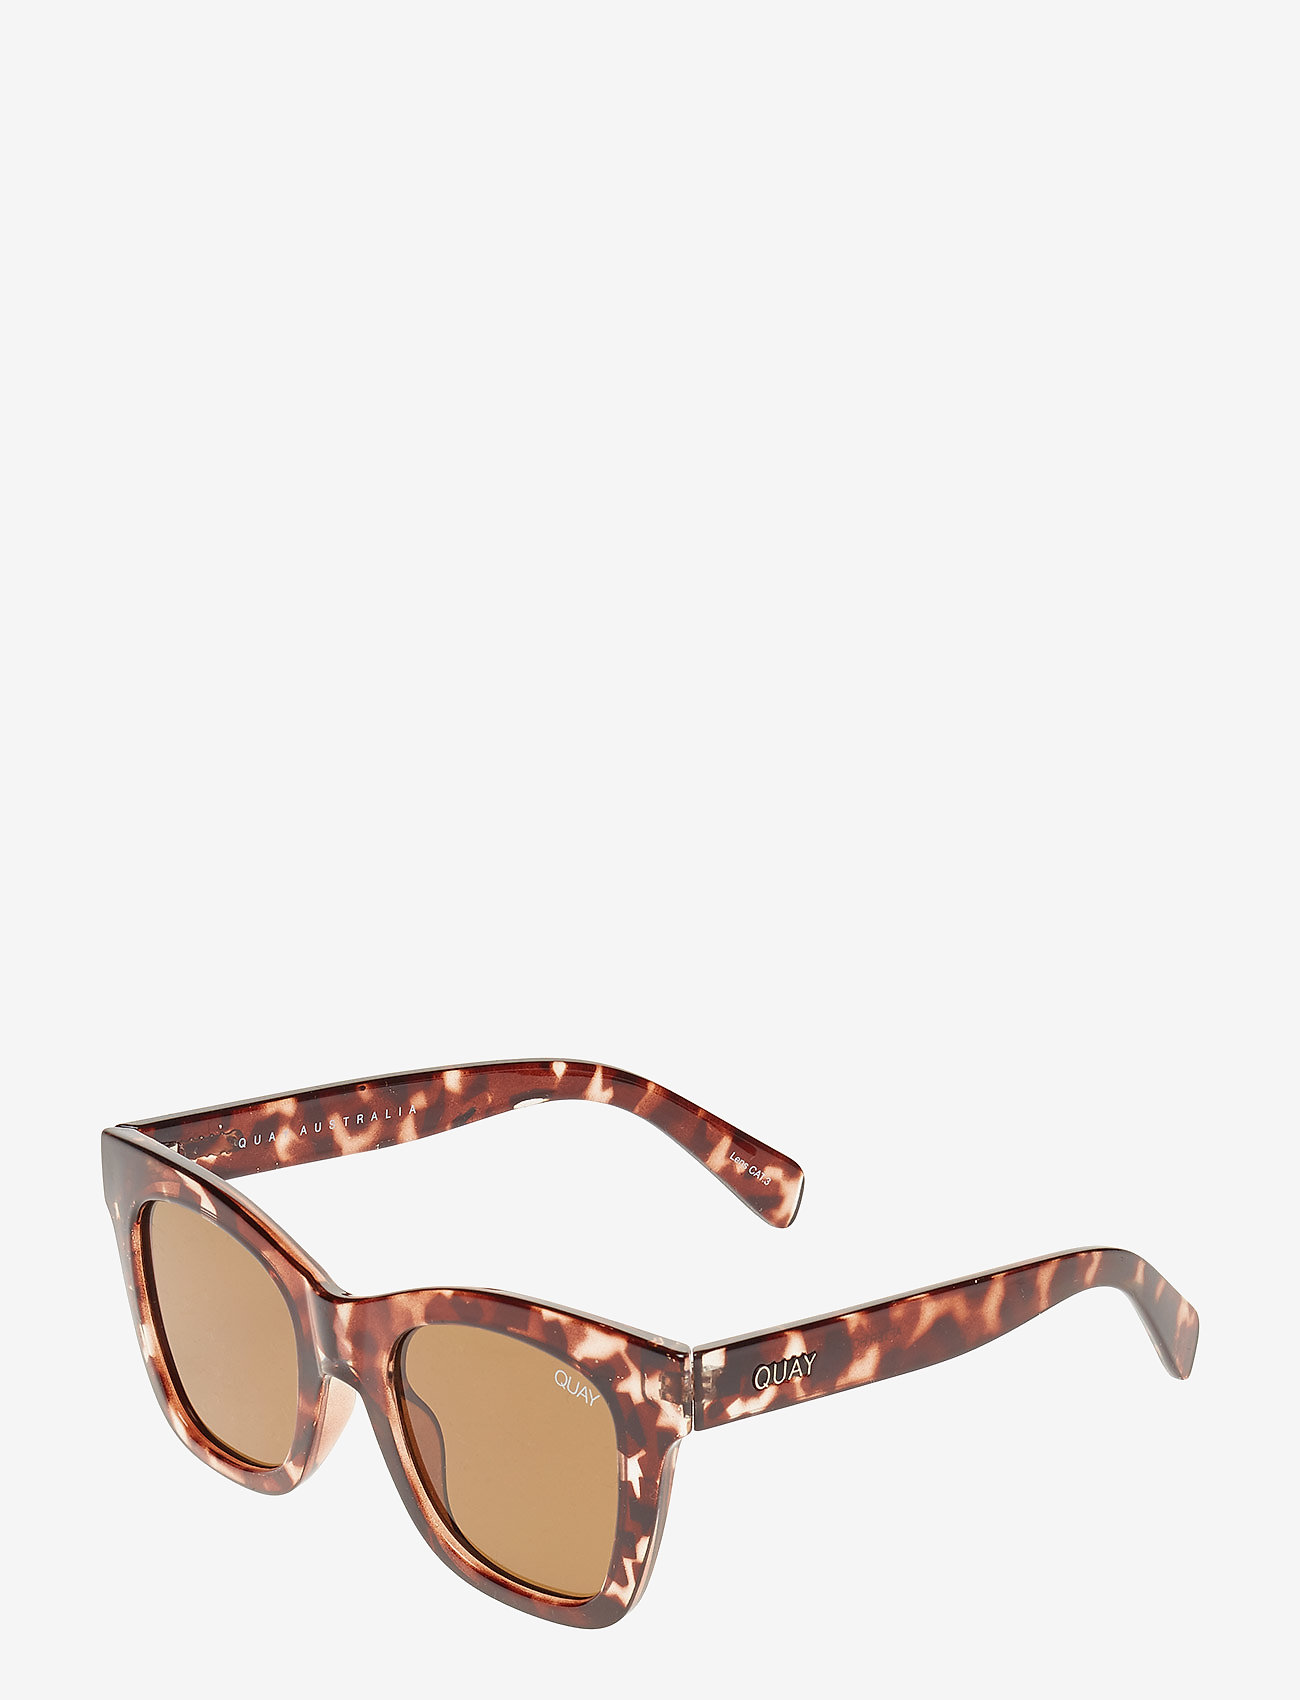 QUAY AUSTRALIA - AFTER HOURS - d-shaped - tort / brown lens - 1